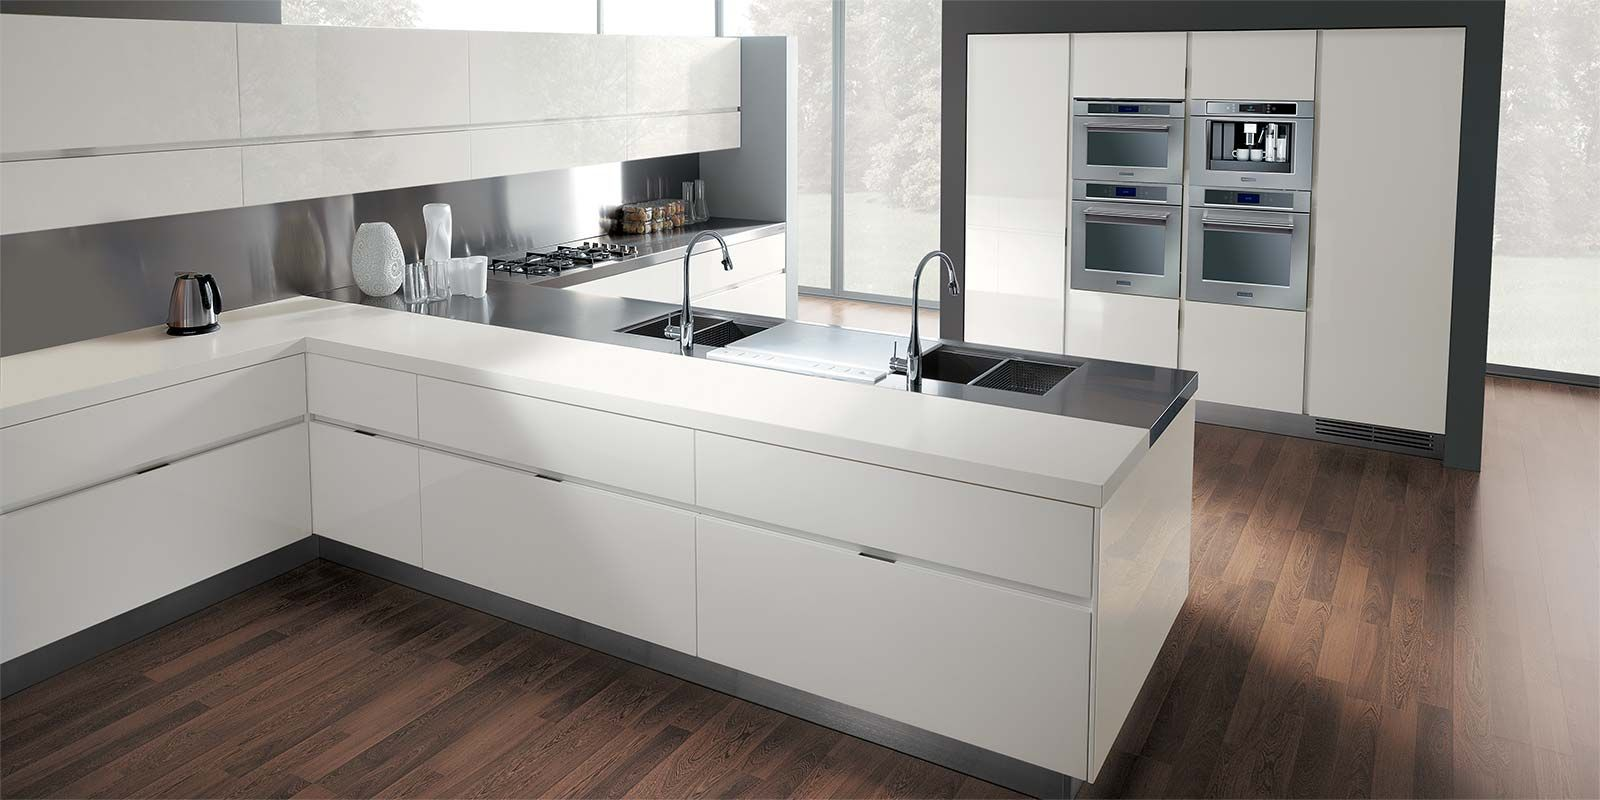 Italian Modern Design Kitchens - Elektra by Ernestomeda ...